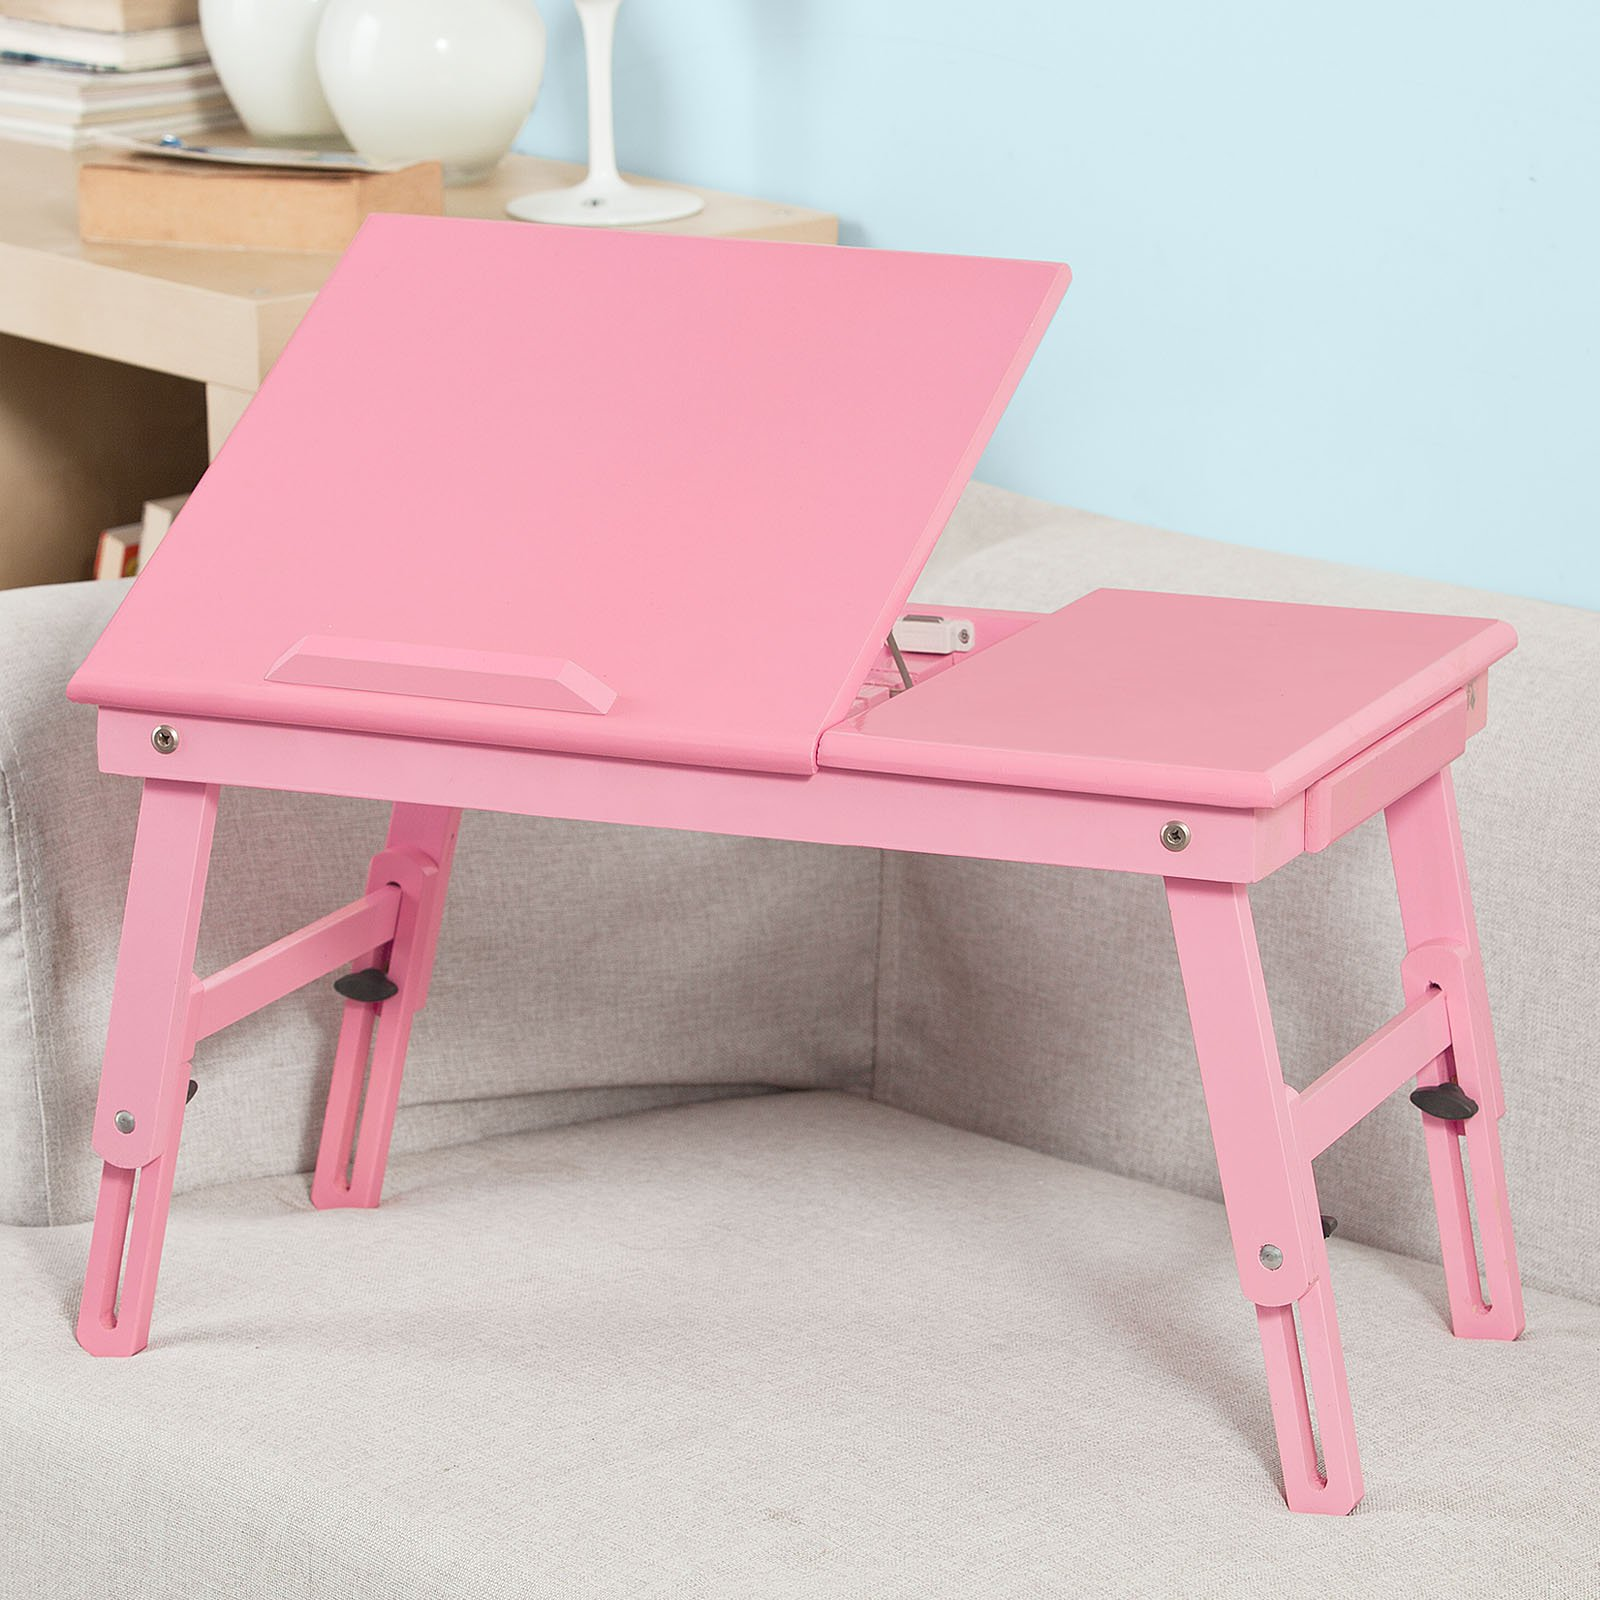 Sobuy Shop Buy Sobuy Wood Foldable Notebook Laptop Table Folding Food Bed Lap